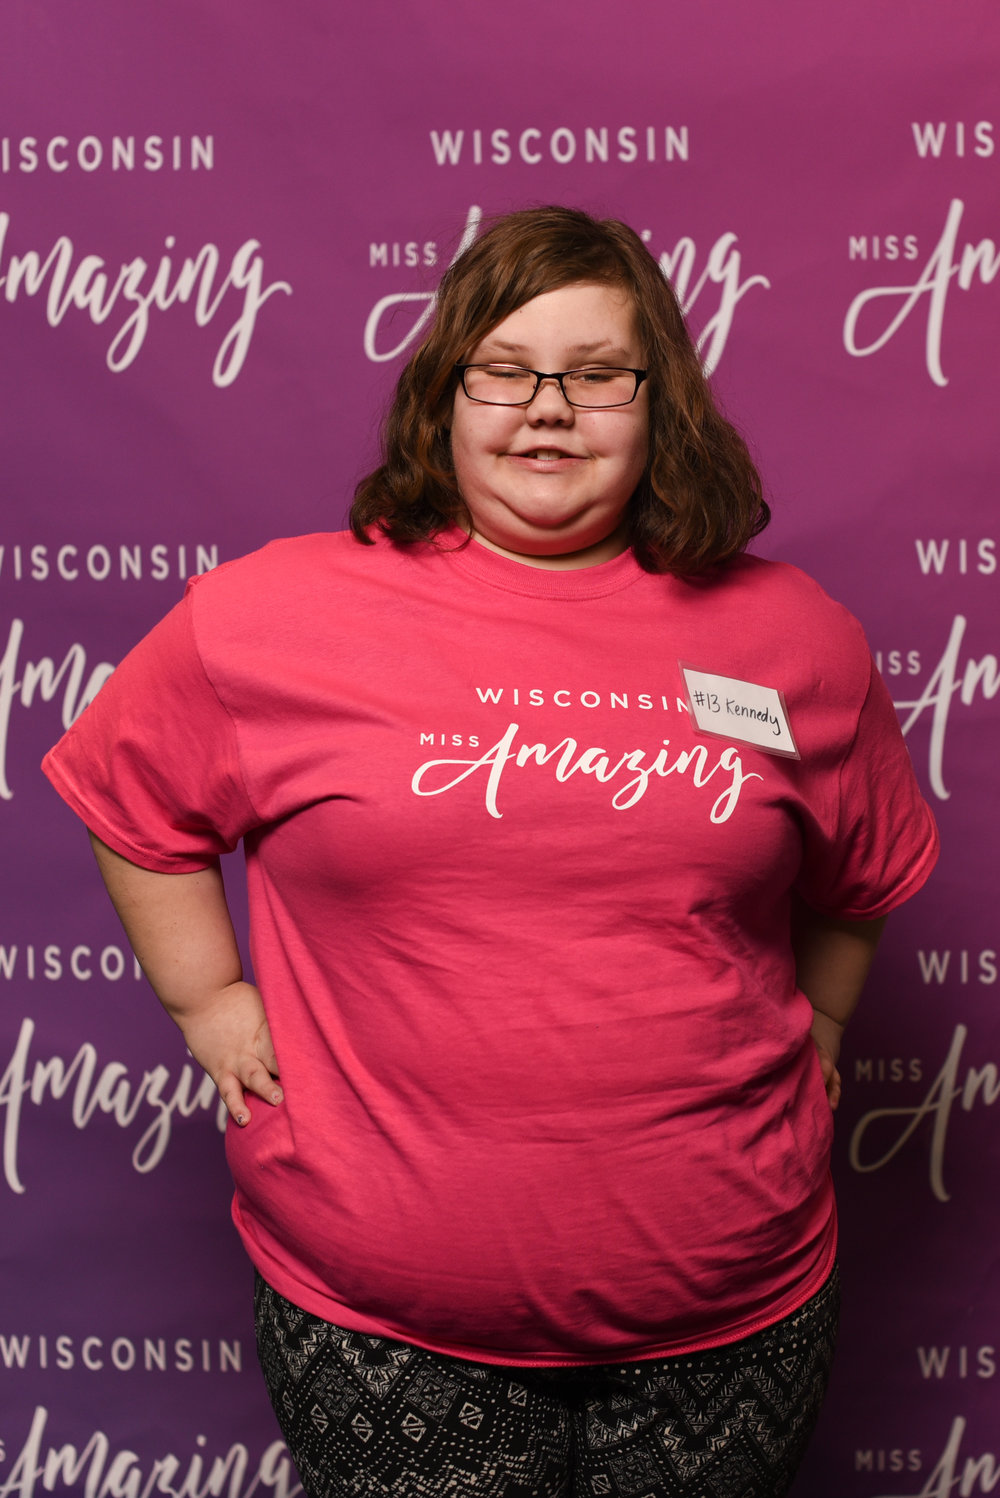 Wisconsin Miss Amazing  Jr. Teen  |  Kennedy   Click to read more about Kennedy!